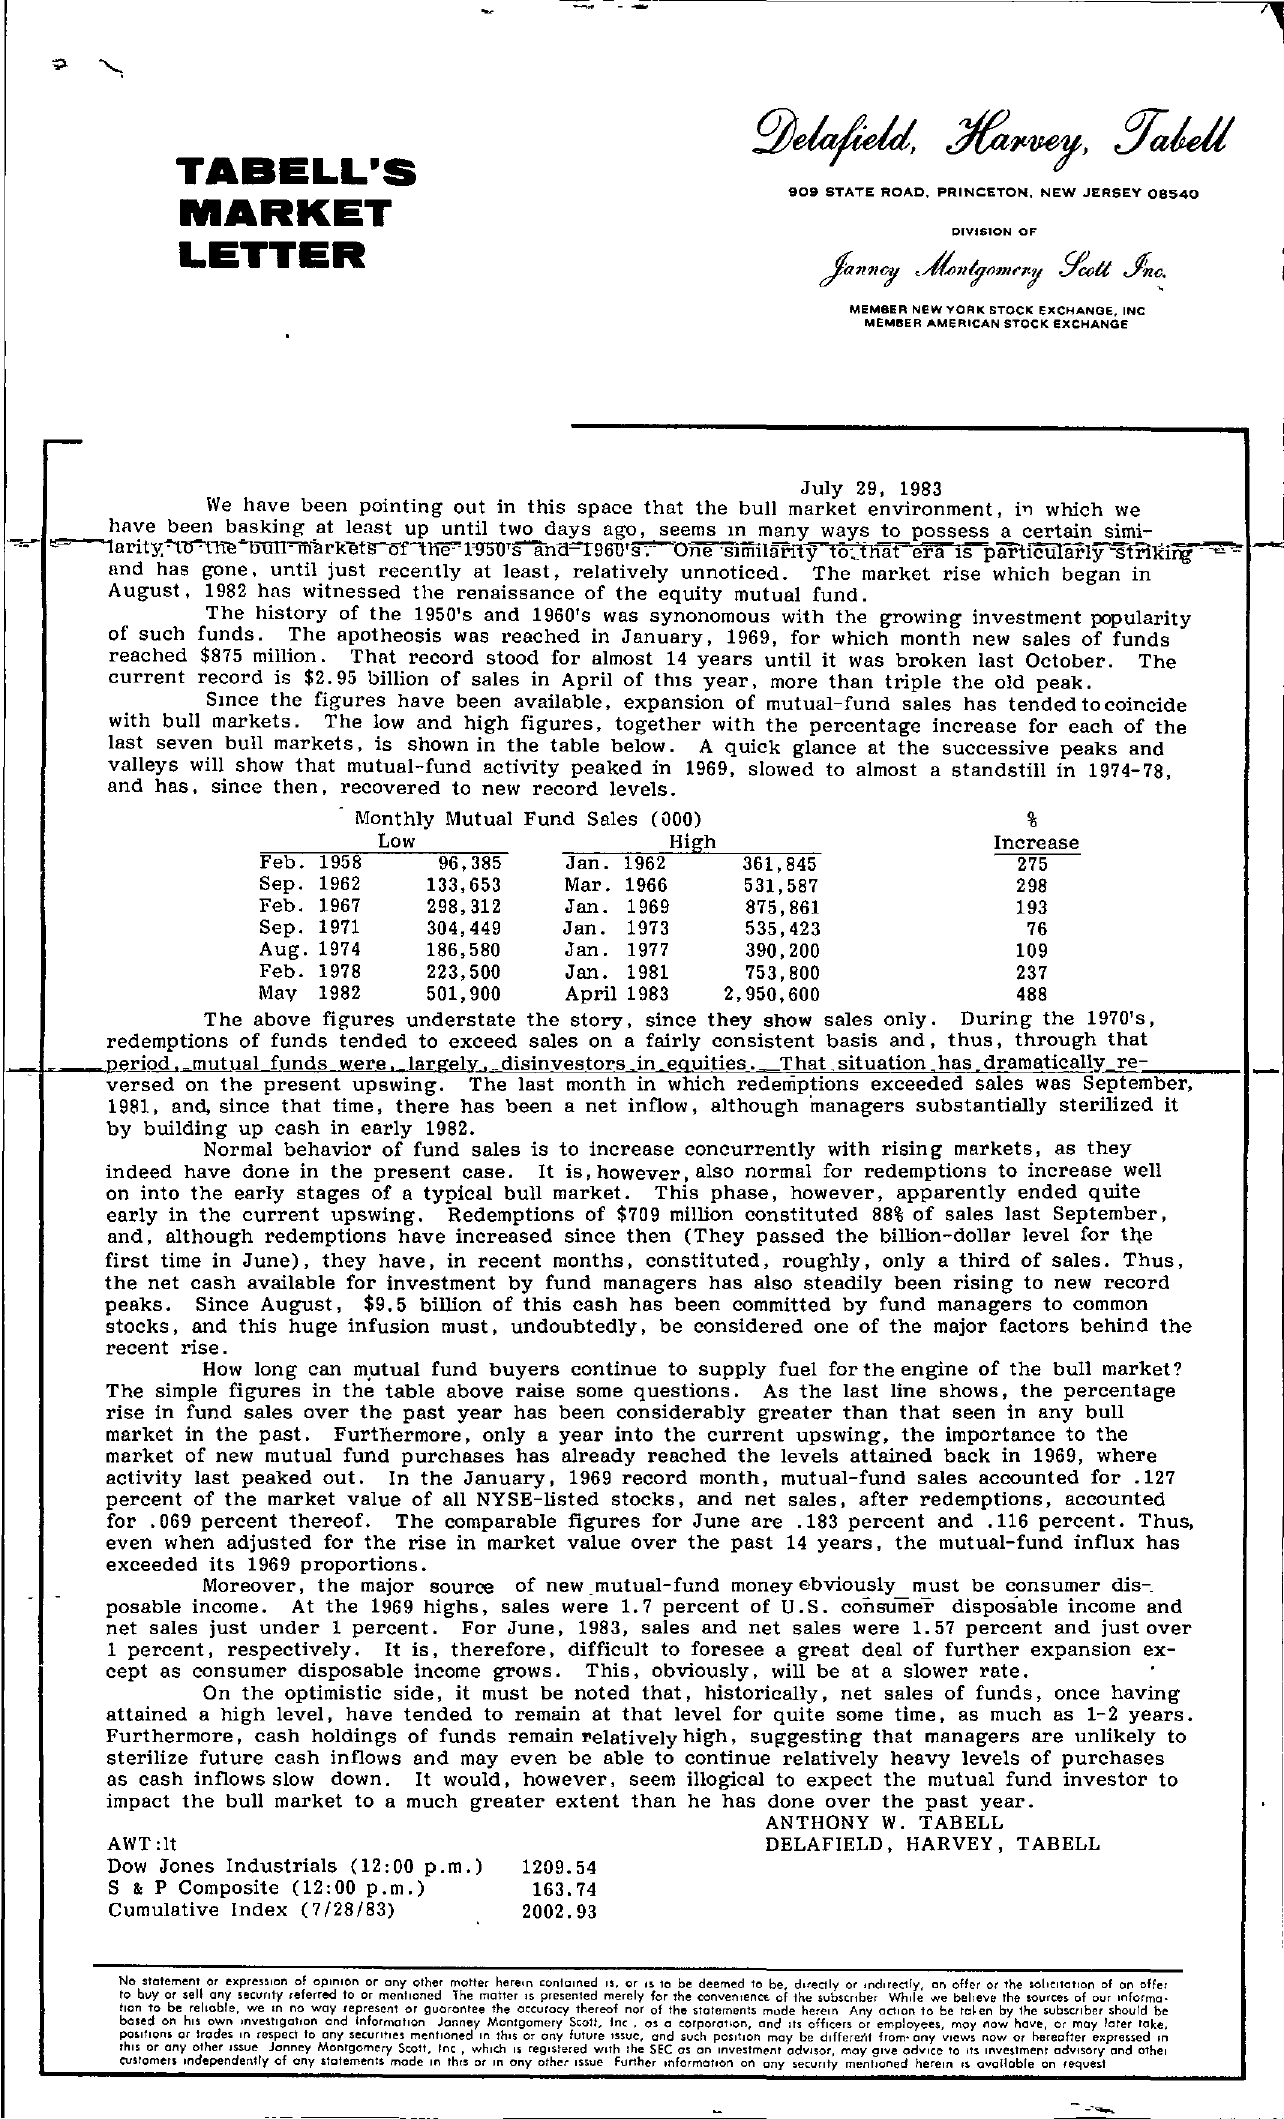 Tabell's Market Letter - July 29, 1983